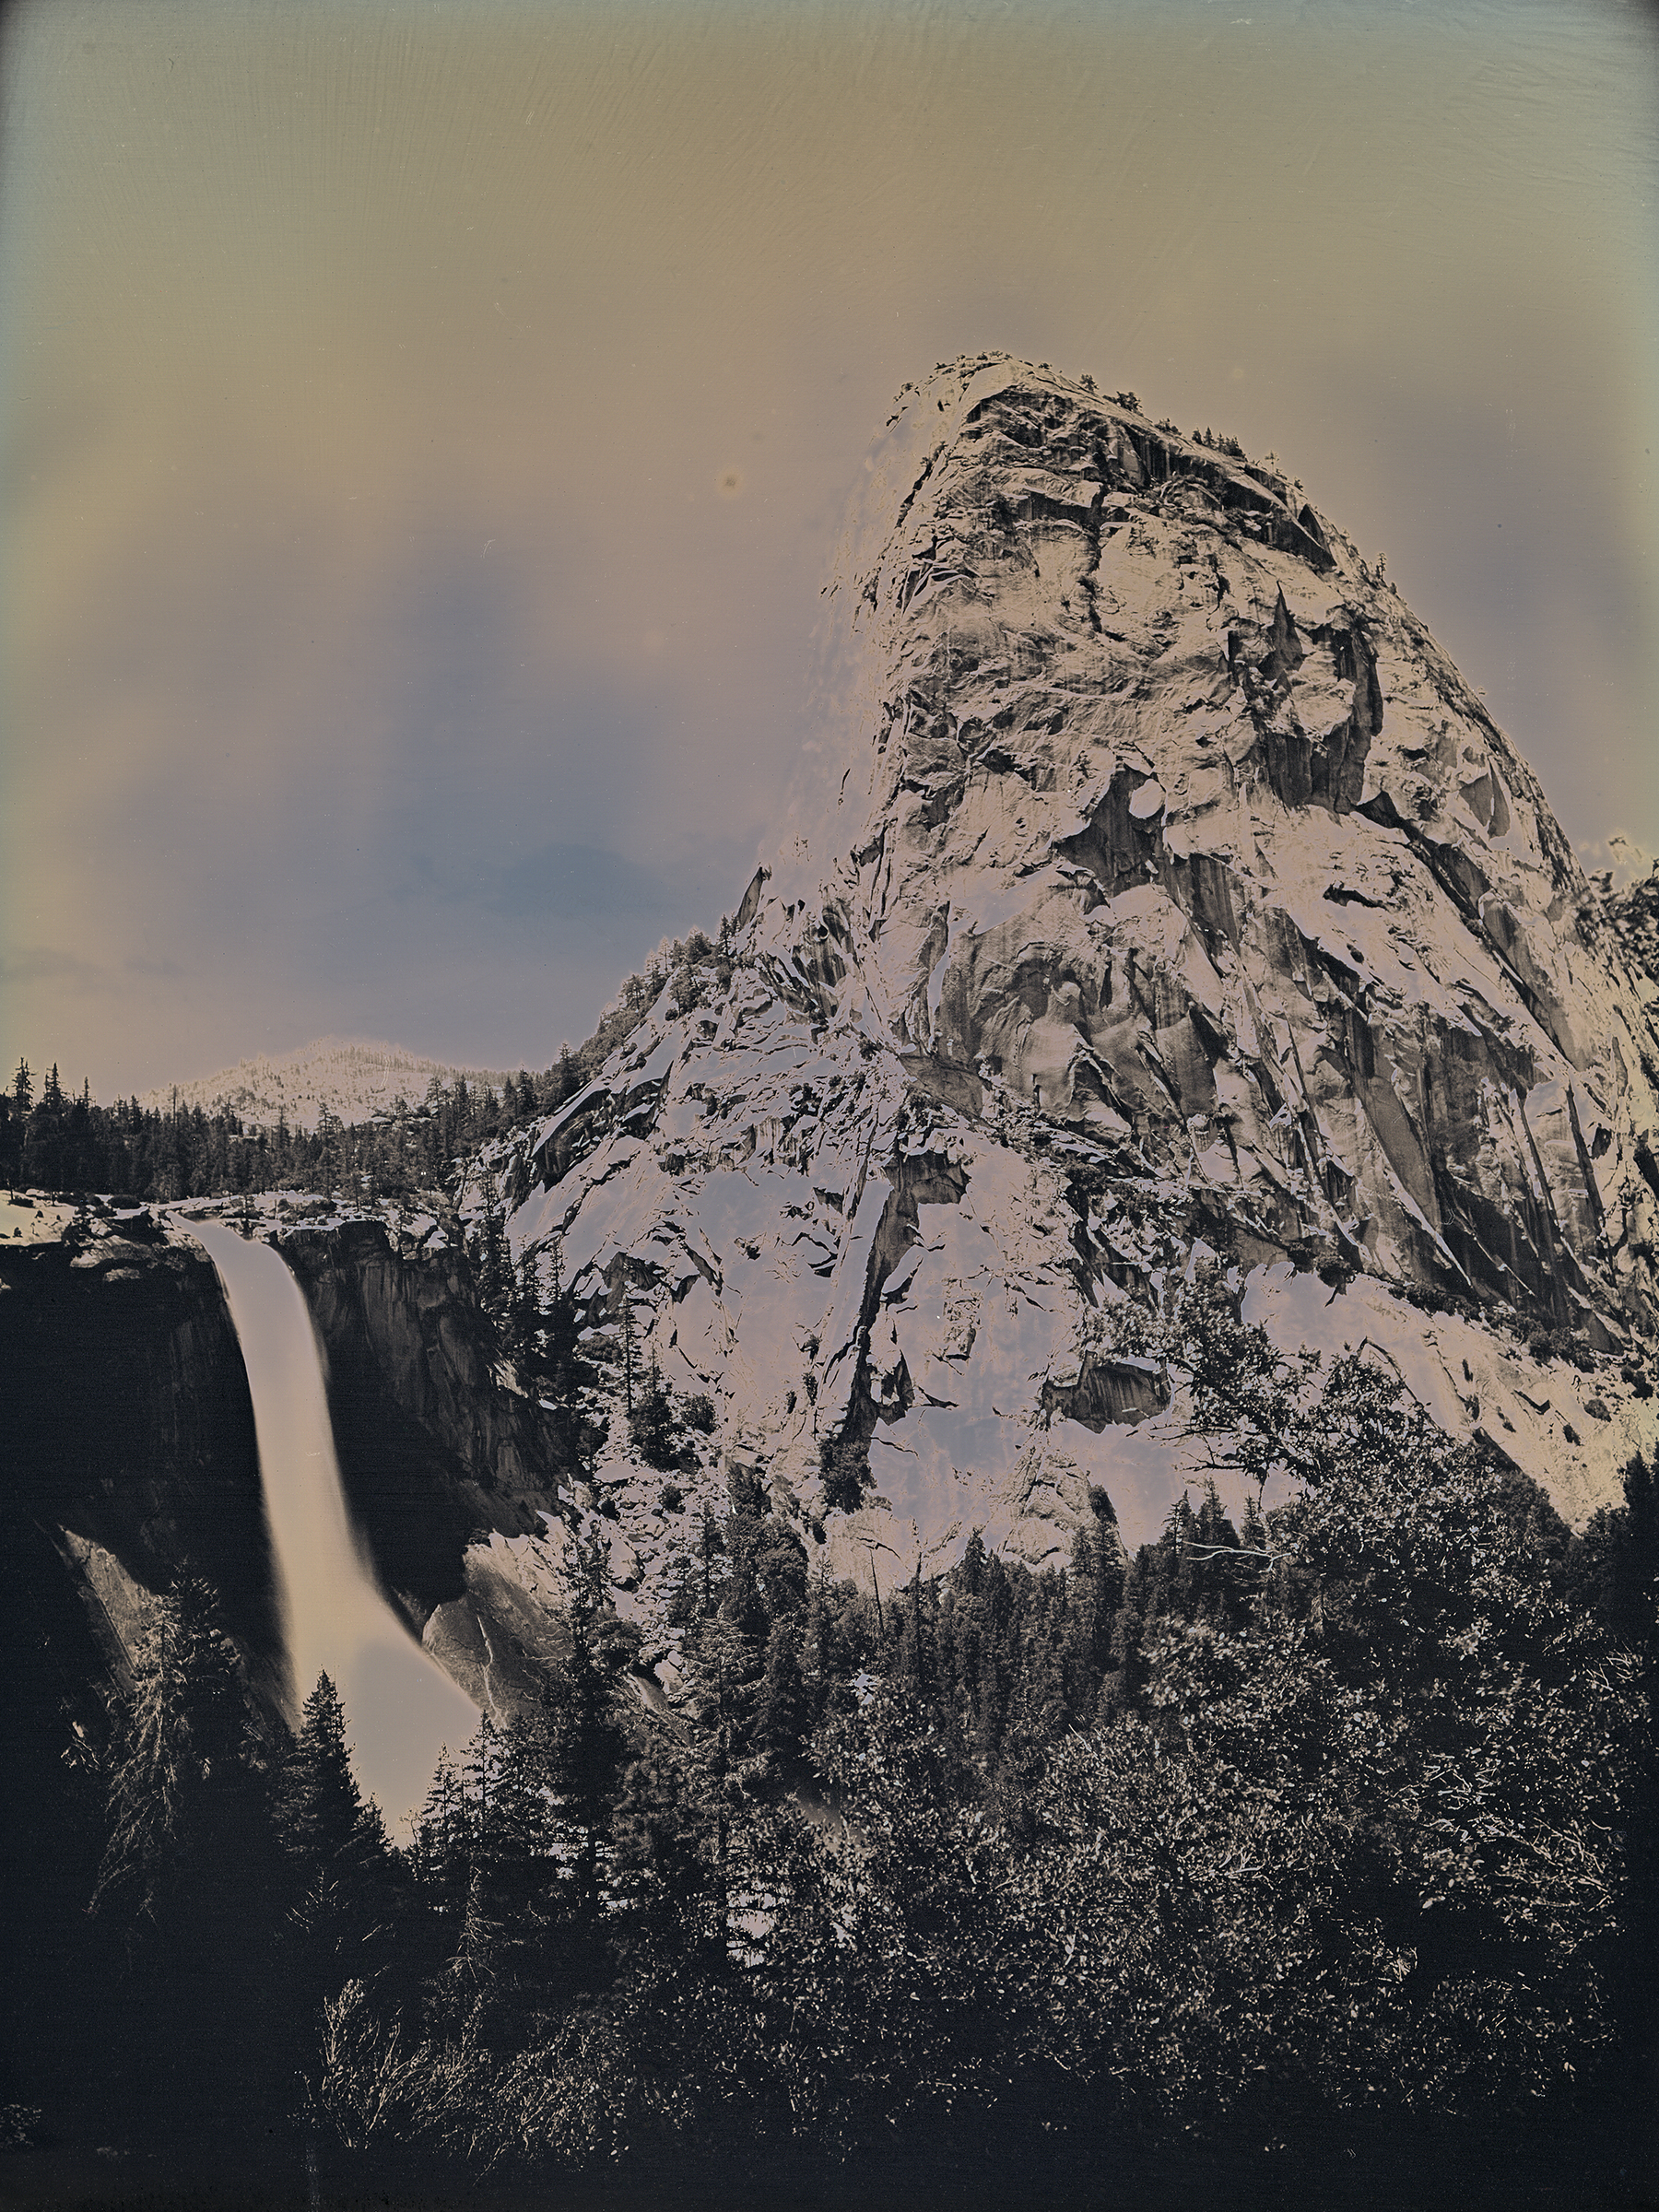 Binh Danh  Nevada Fall and Liberty Cap, Yosemite, CA , 2017  Daguerreotype 11 x 9 x 1 in. Courtesy of the artist and Haines Gallery, SF   Framing courtesy of The Painters Place    View on Artsy